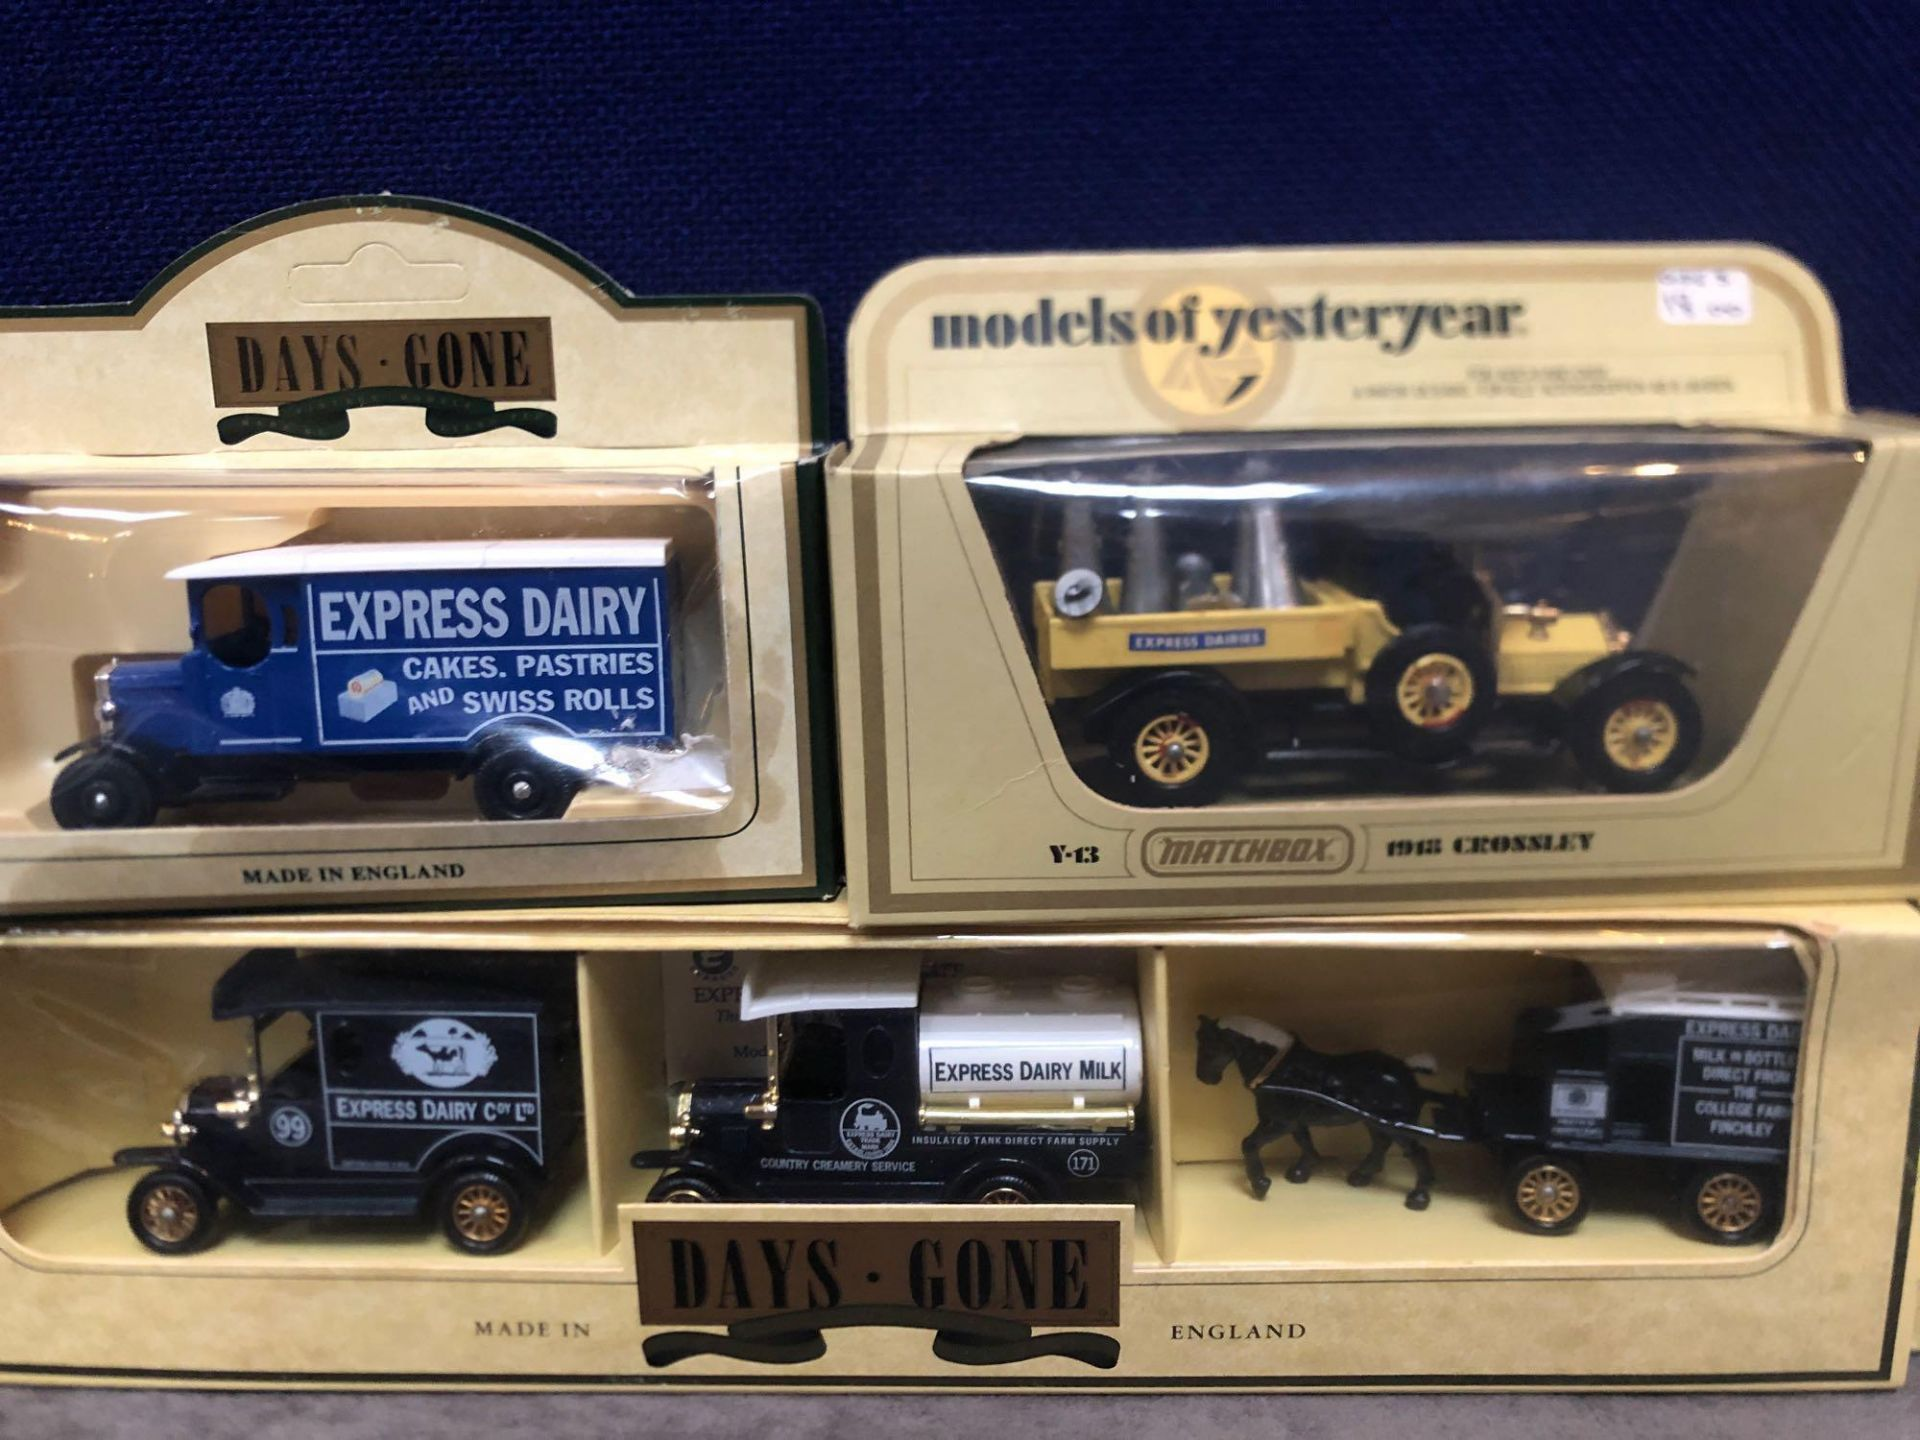 2x Lledo Diecast Express Dairy Sets And 2x Lledo Diecast Express Dairy Vehicles, Each One Boxed. - Image 3 of 3